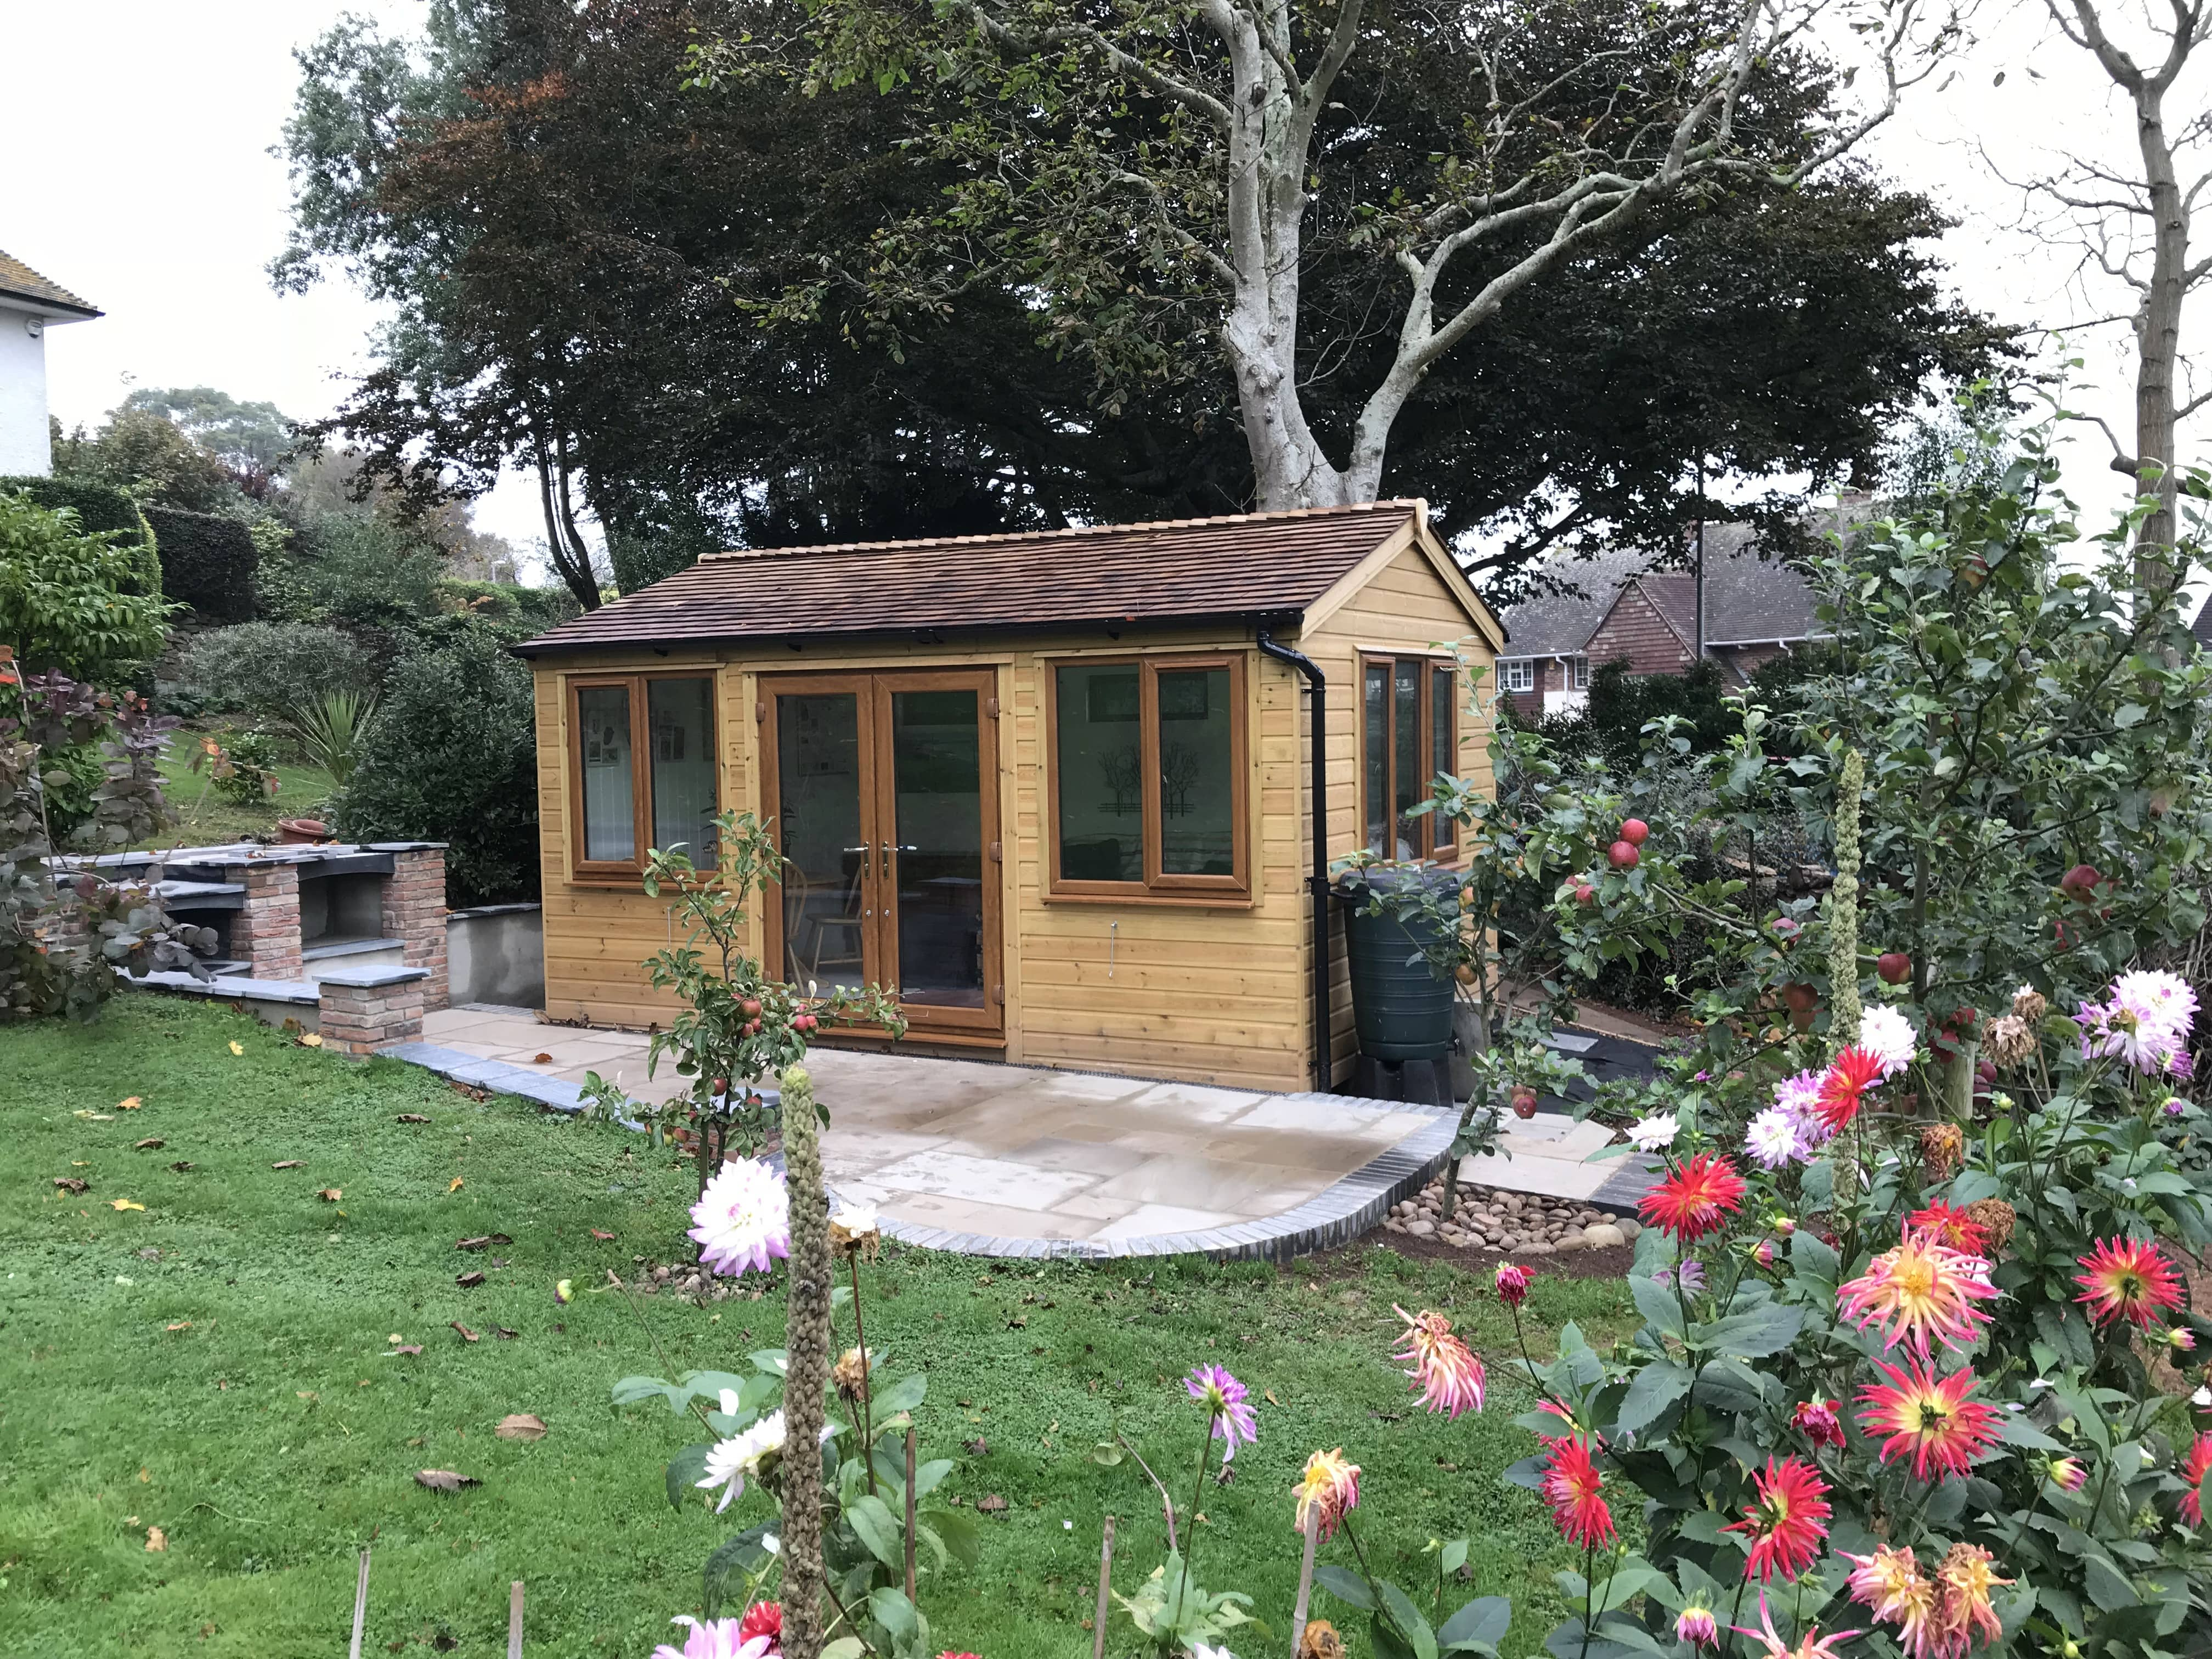 Insulated summerhouse with natural wood